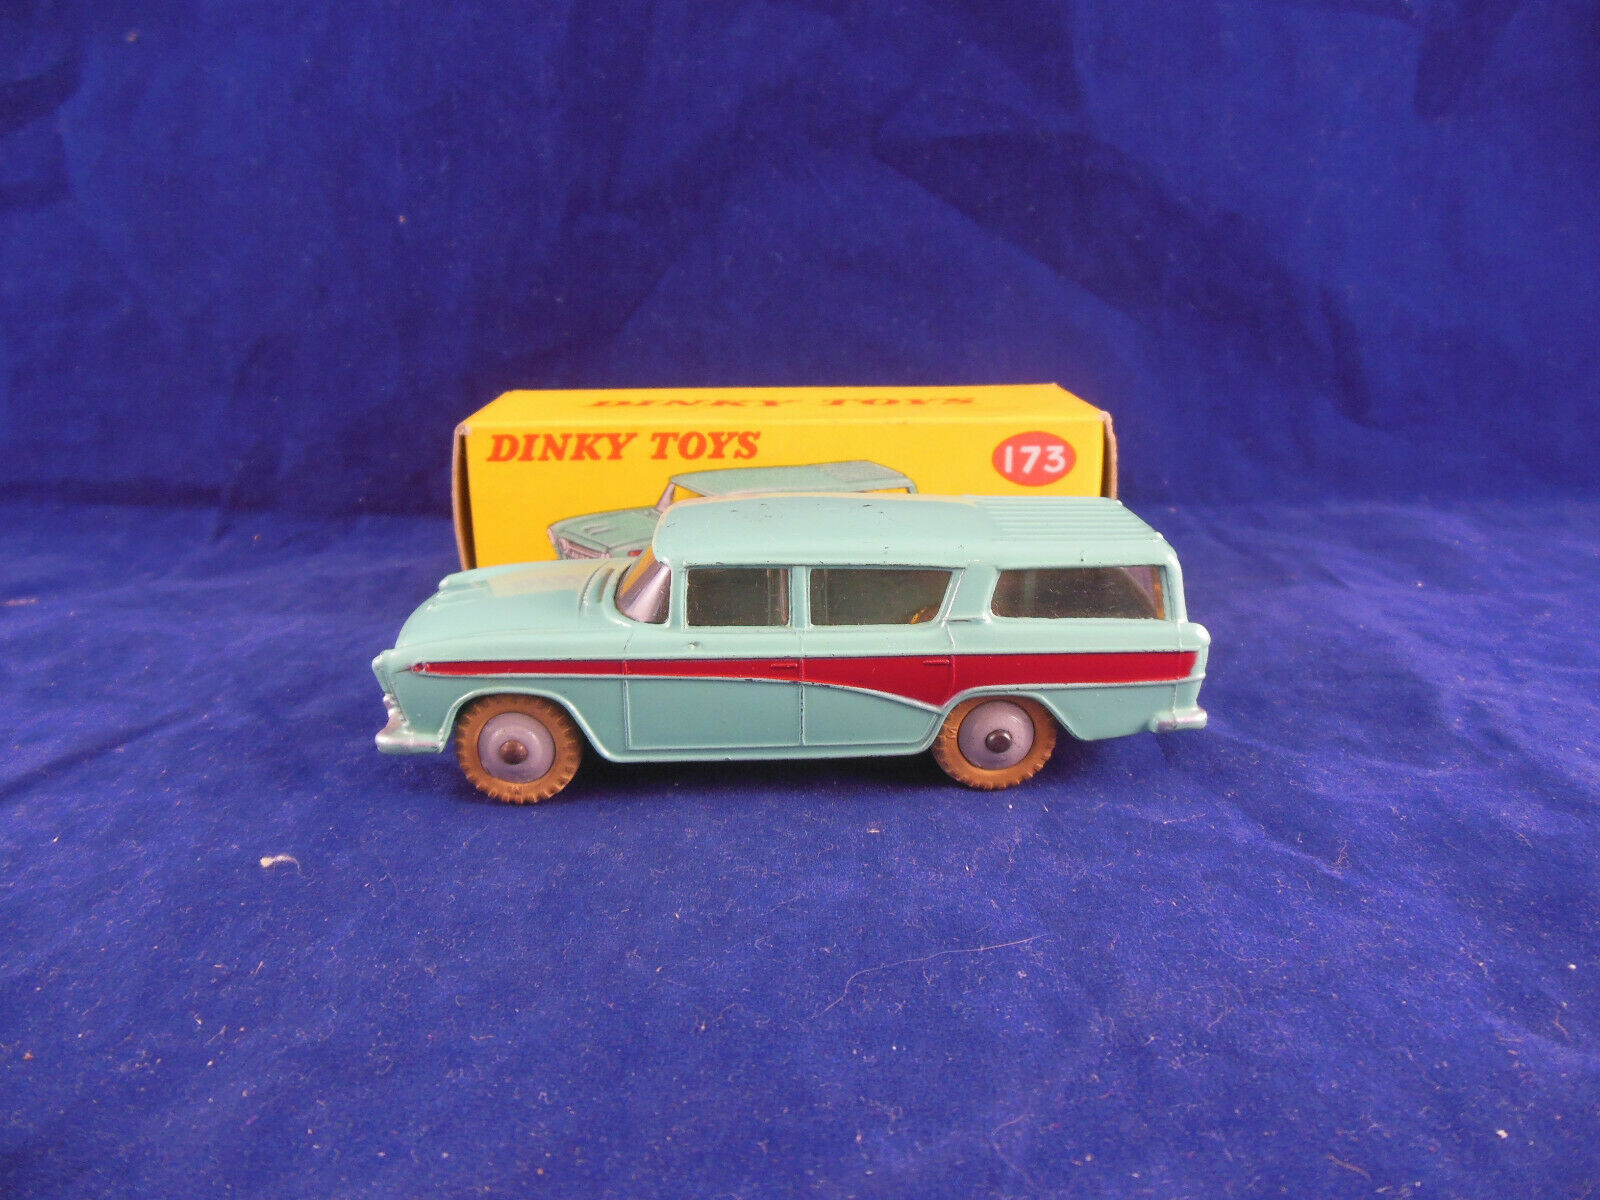 Dinky toys 173 Nash Rambler in Turquoise & Cherise Original & Superb Condition